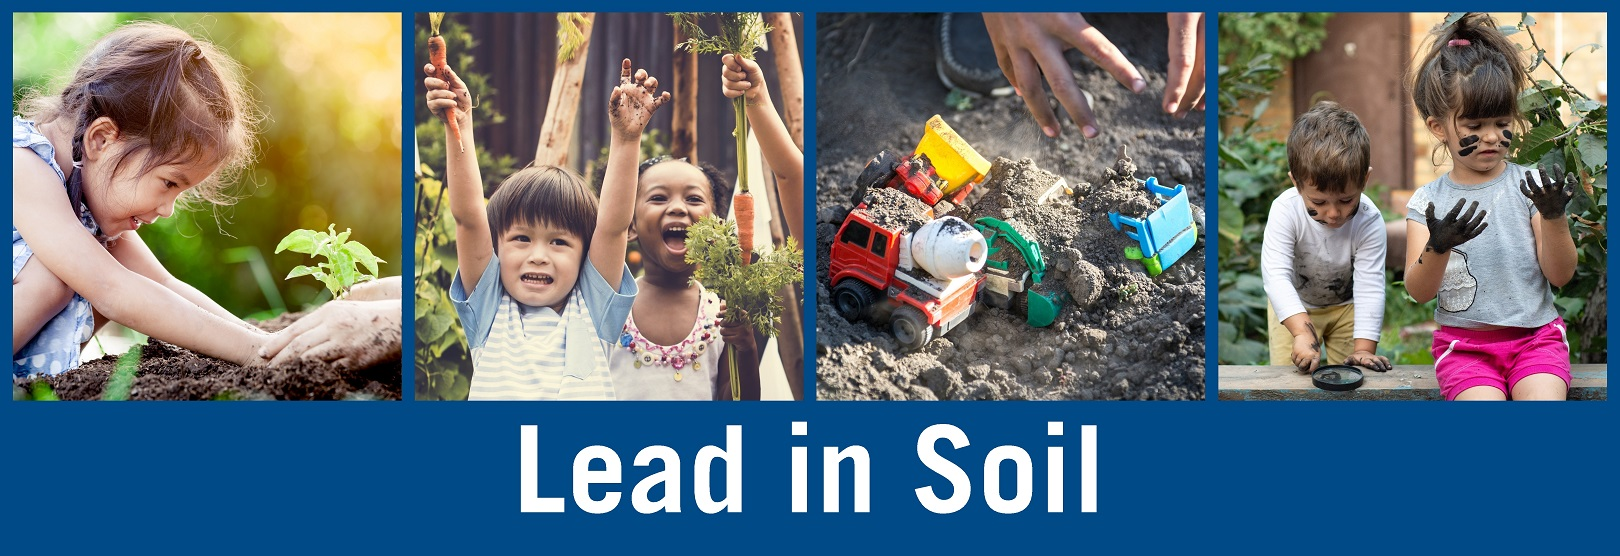 Lead-Safe Toolkit for Home-Based Child Care: Lead in Soil